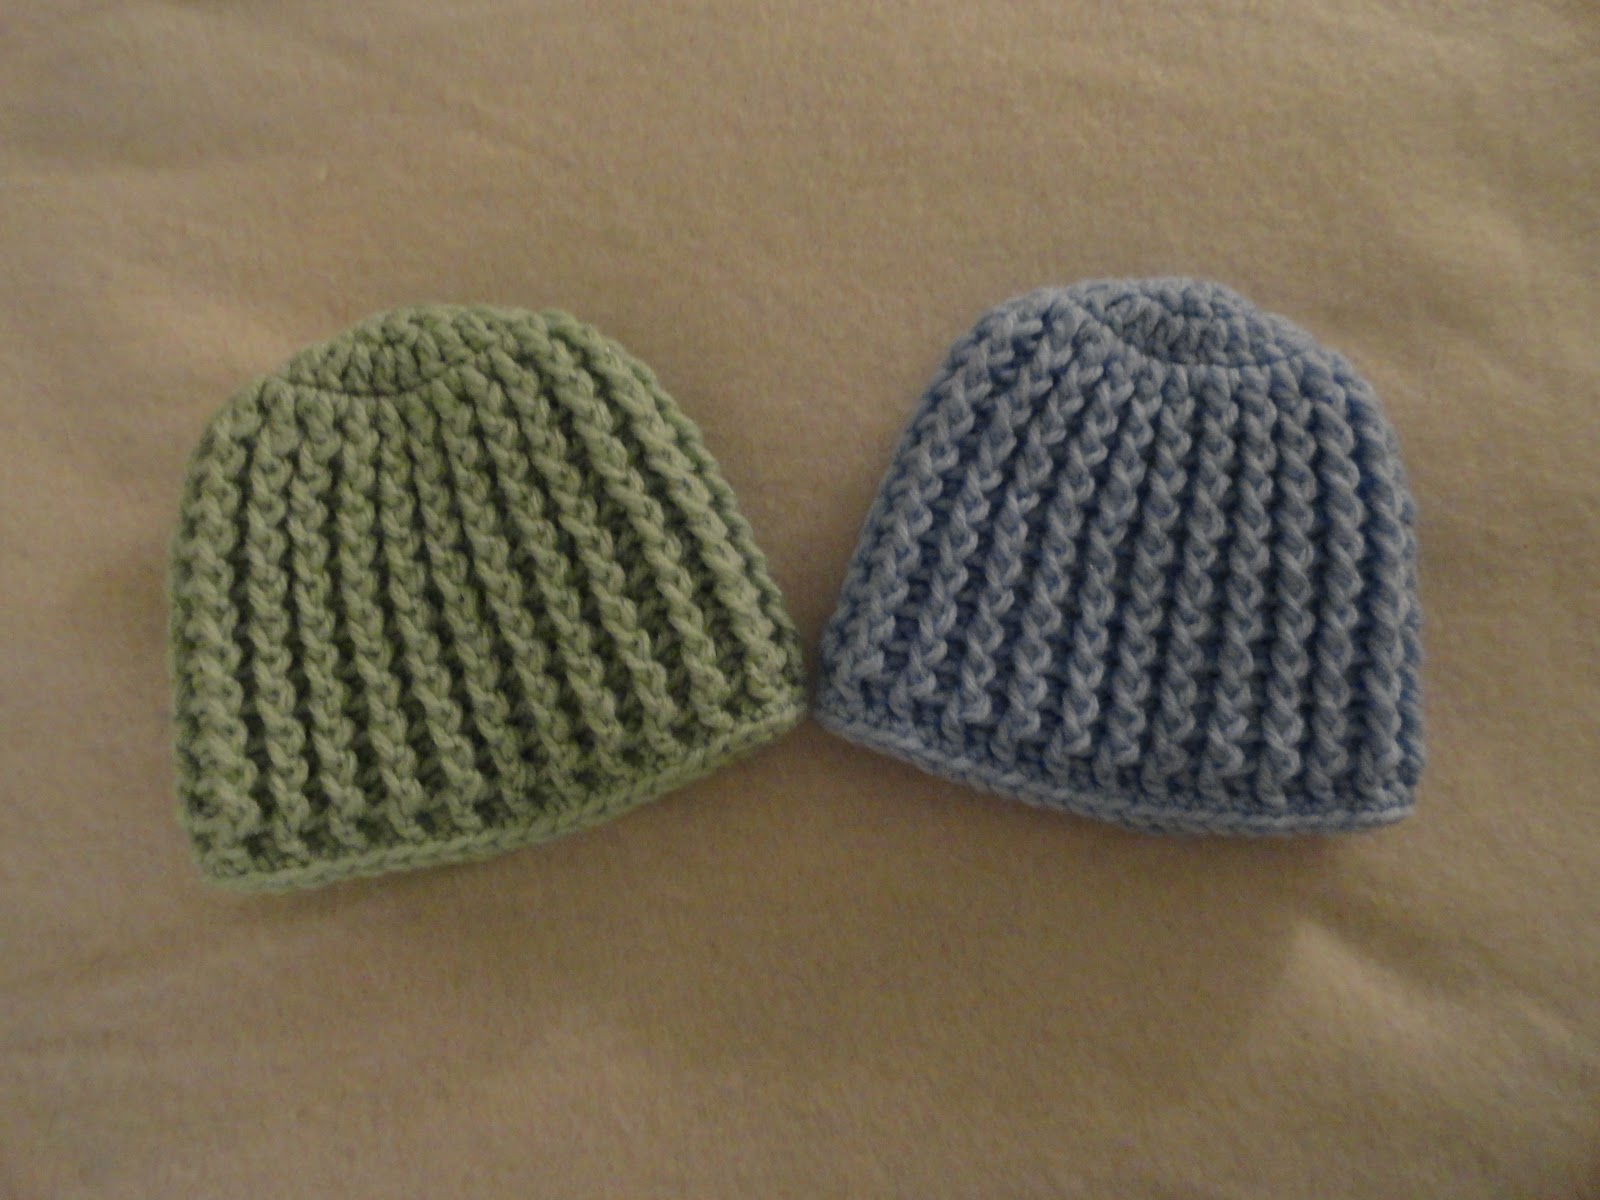 Crochet Ribbing : Crochet Crazy Mama: Crochet Ribbed Baby Hats